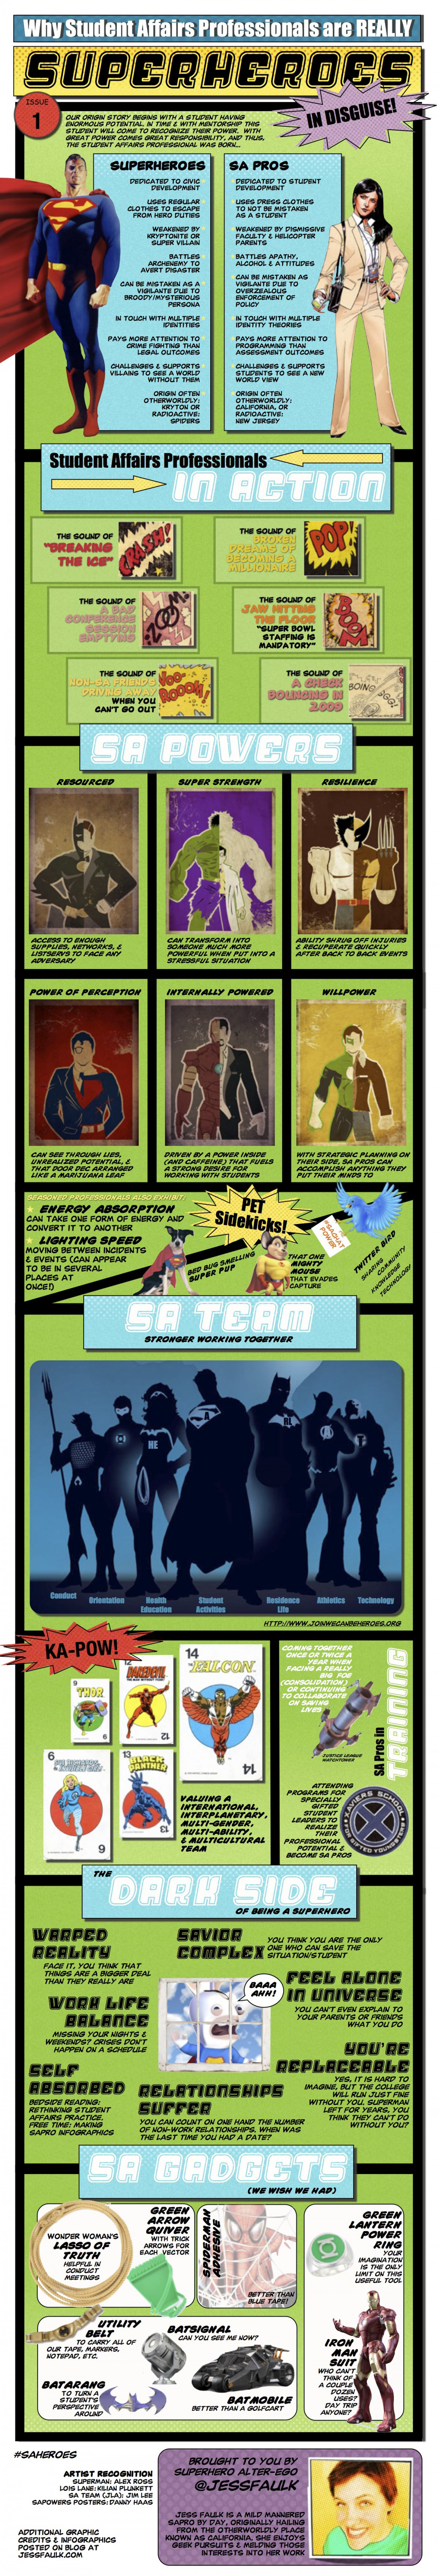 Why Student Affairs Professionals are REALLY Superheroes in Disguise Infographic